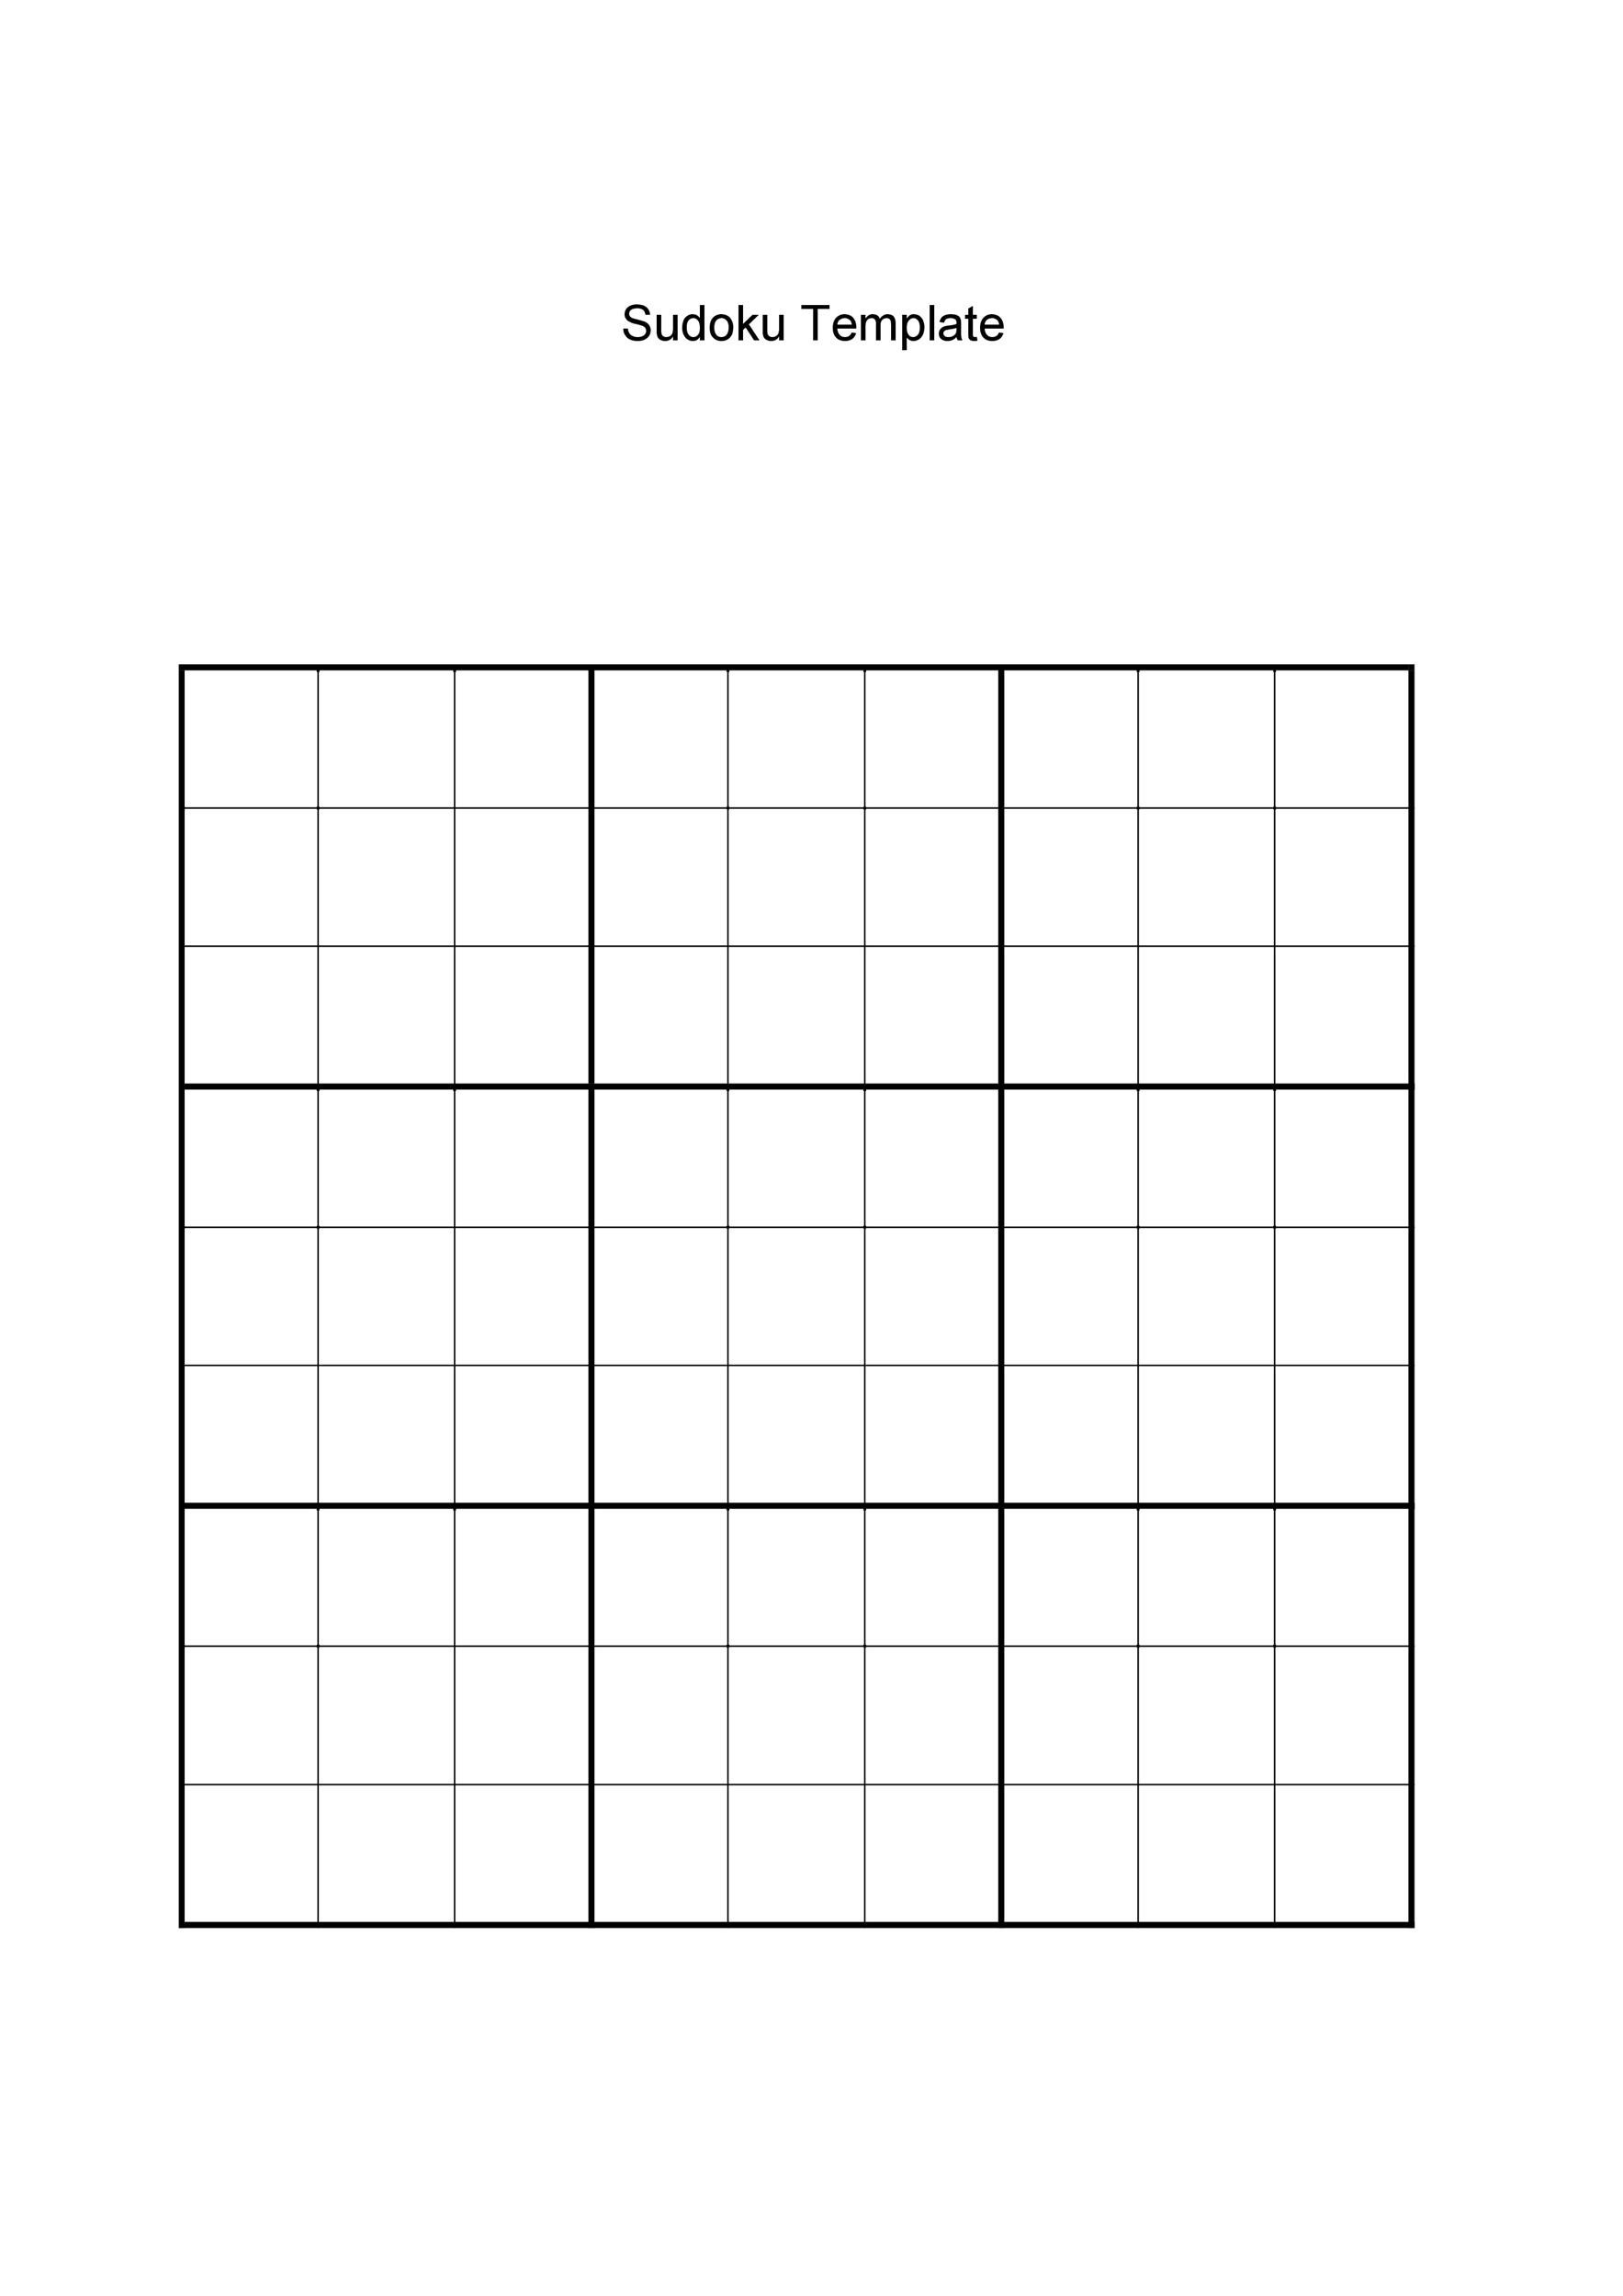 picture about Blank Sudoku Grid Printable titled 50 Blank Sudoku Grids [Free of charge Printable] ᐅ Template Lab